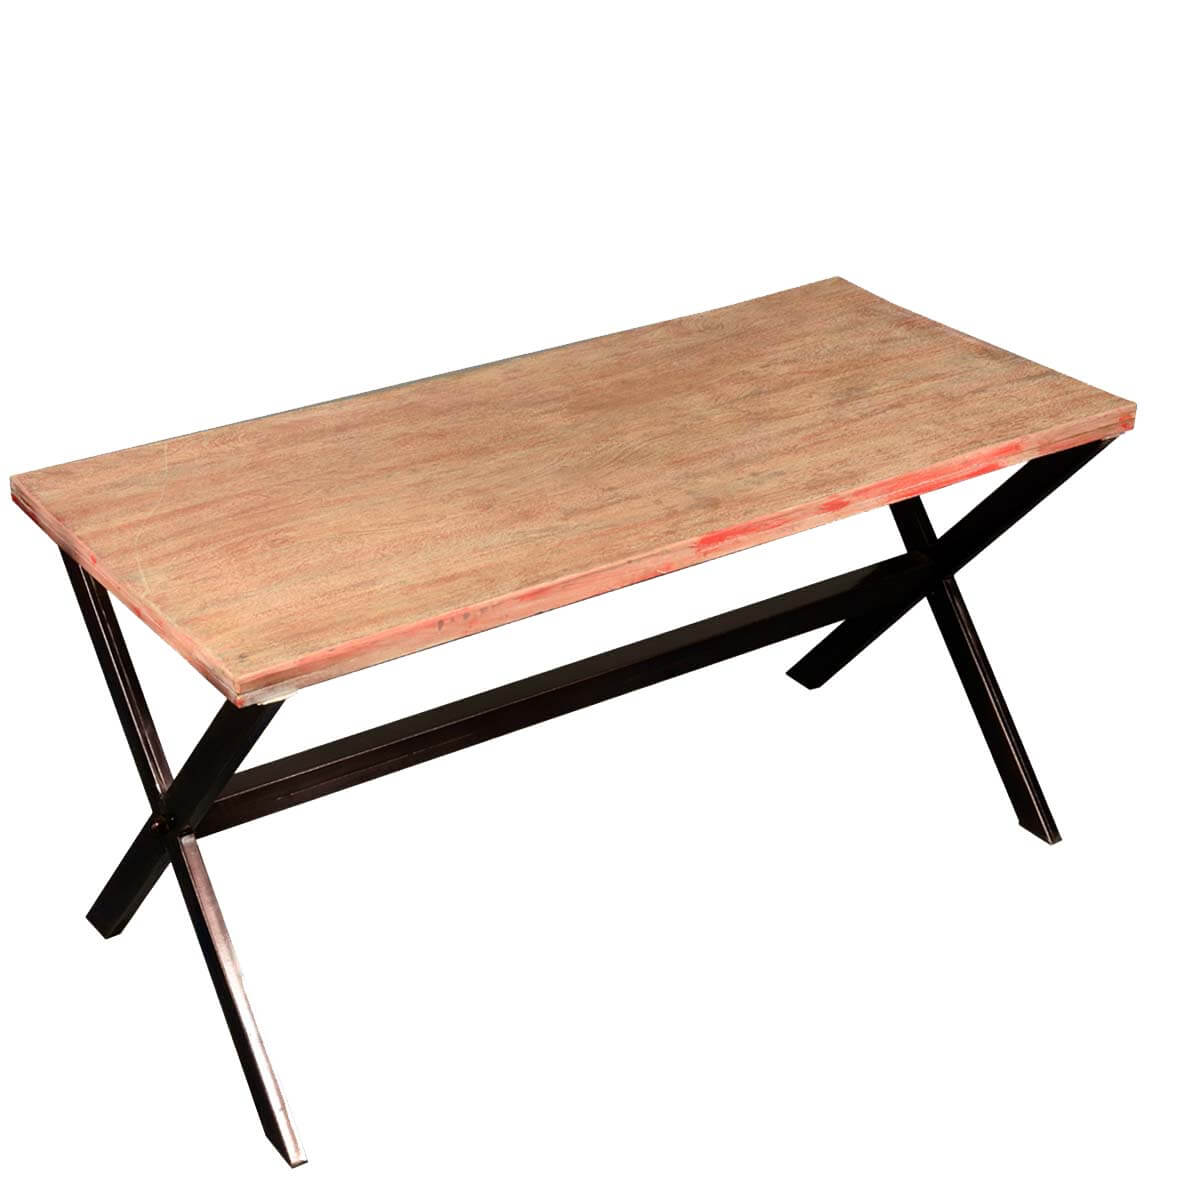 Picnic Style Reclaimed Wood & Iron Trestle Coffee Table